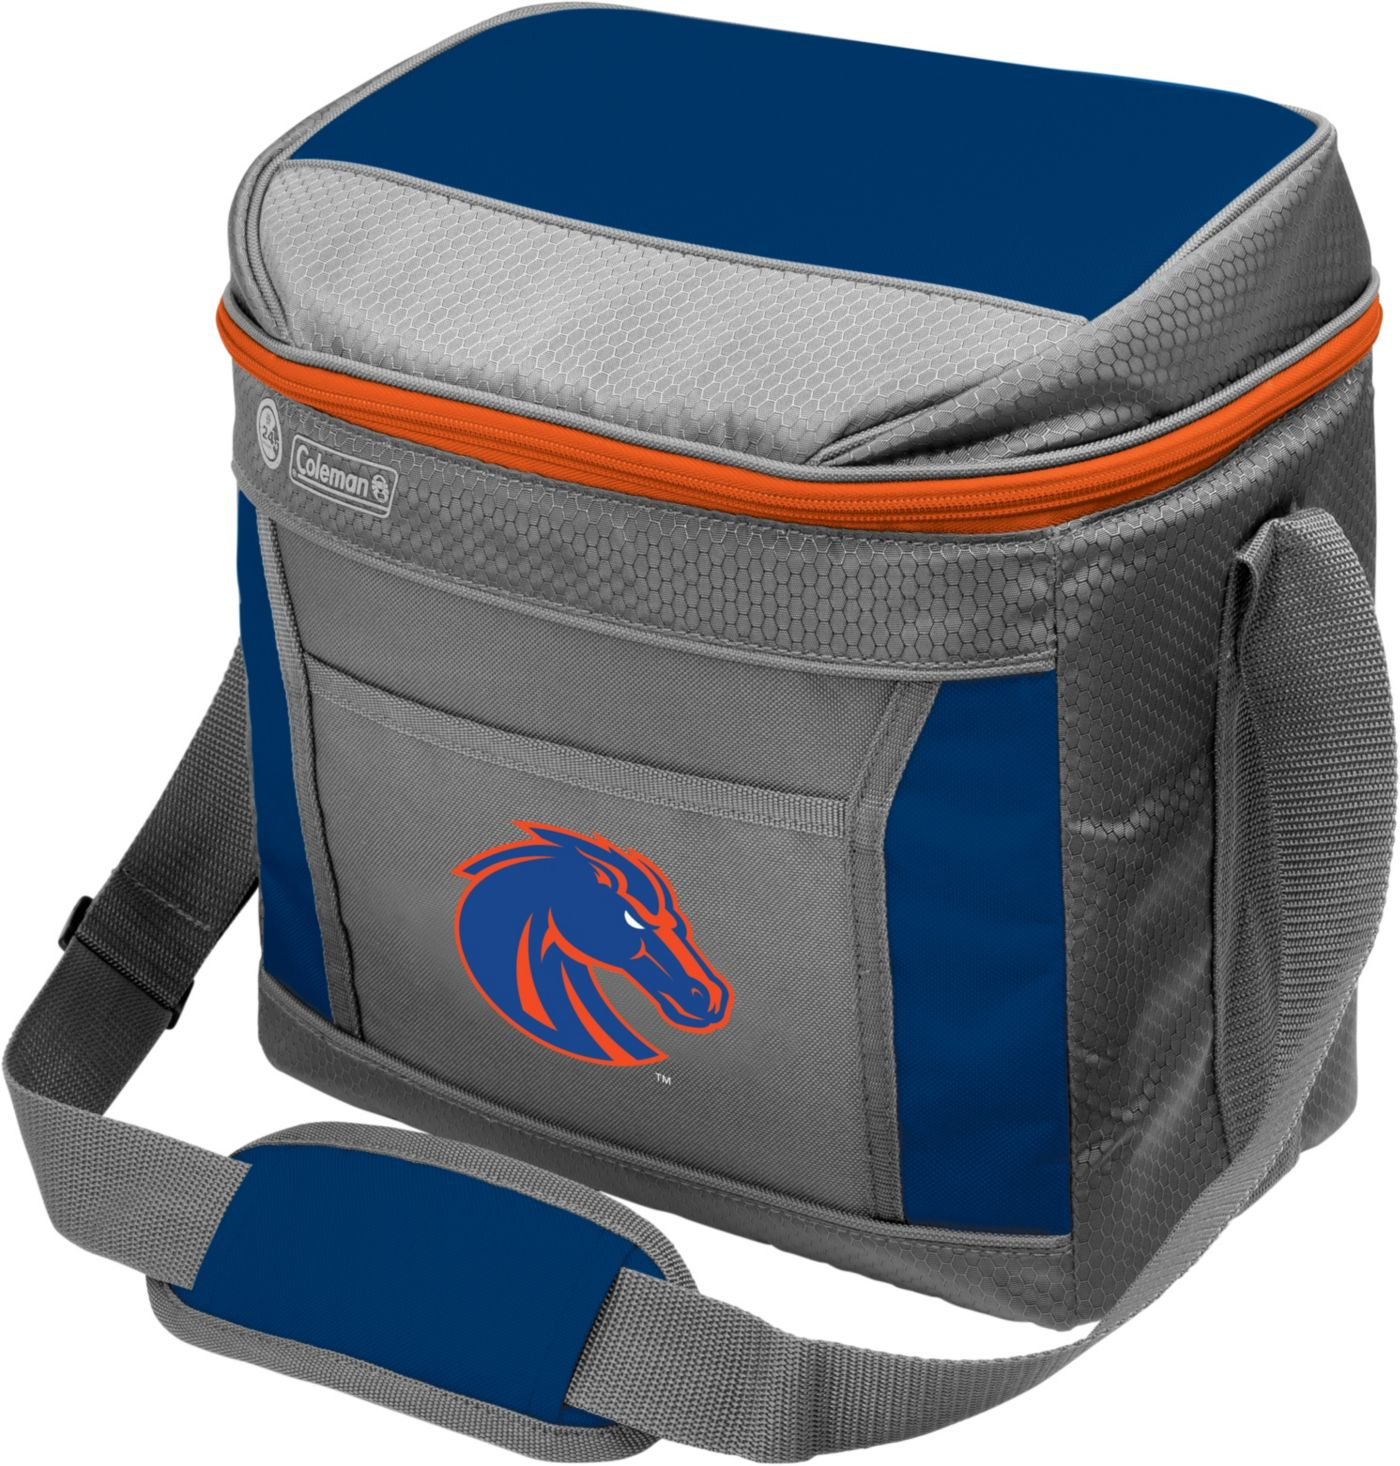 Rawlings Boise St. Broncos 16-Can Cooler